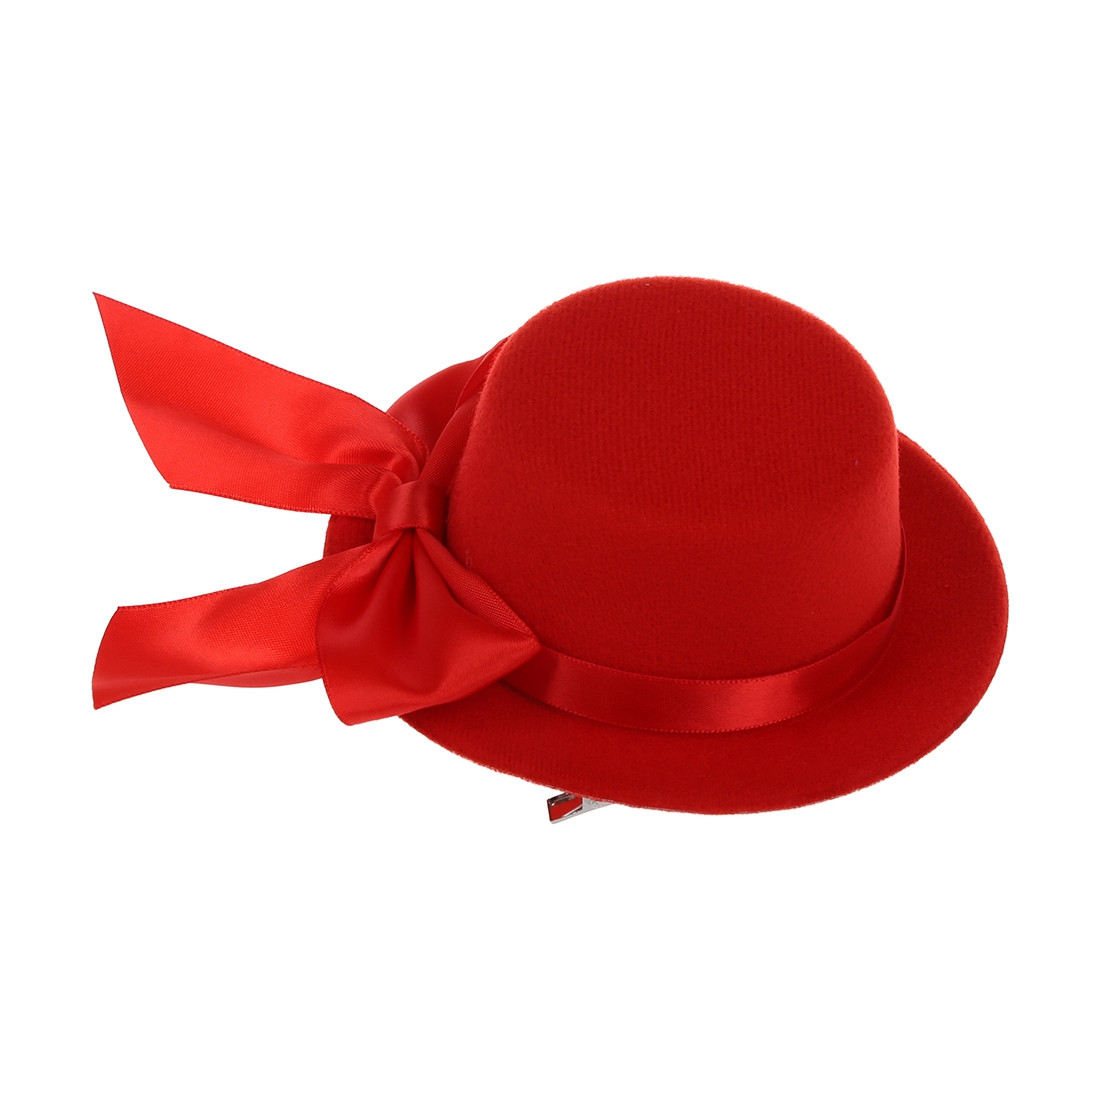 54302844f MYPF Ladies Mini Top Hat Fascinator Burlesque Millinery w/ Bowknot Red-in  Hair Accessories from Women's Clothing & Accessories on Aliexpress.com   ...